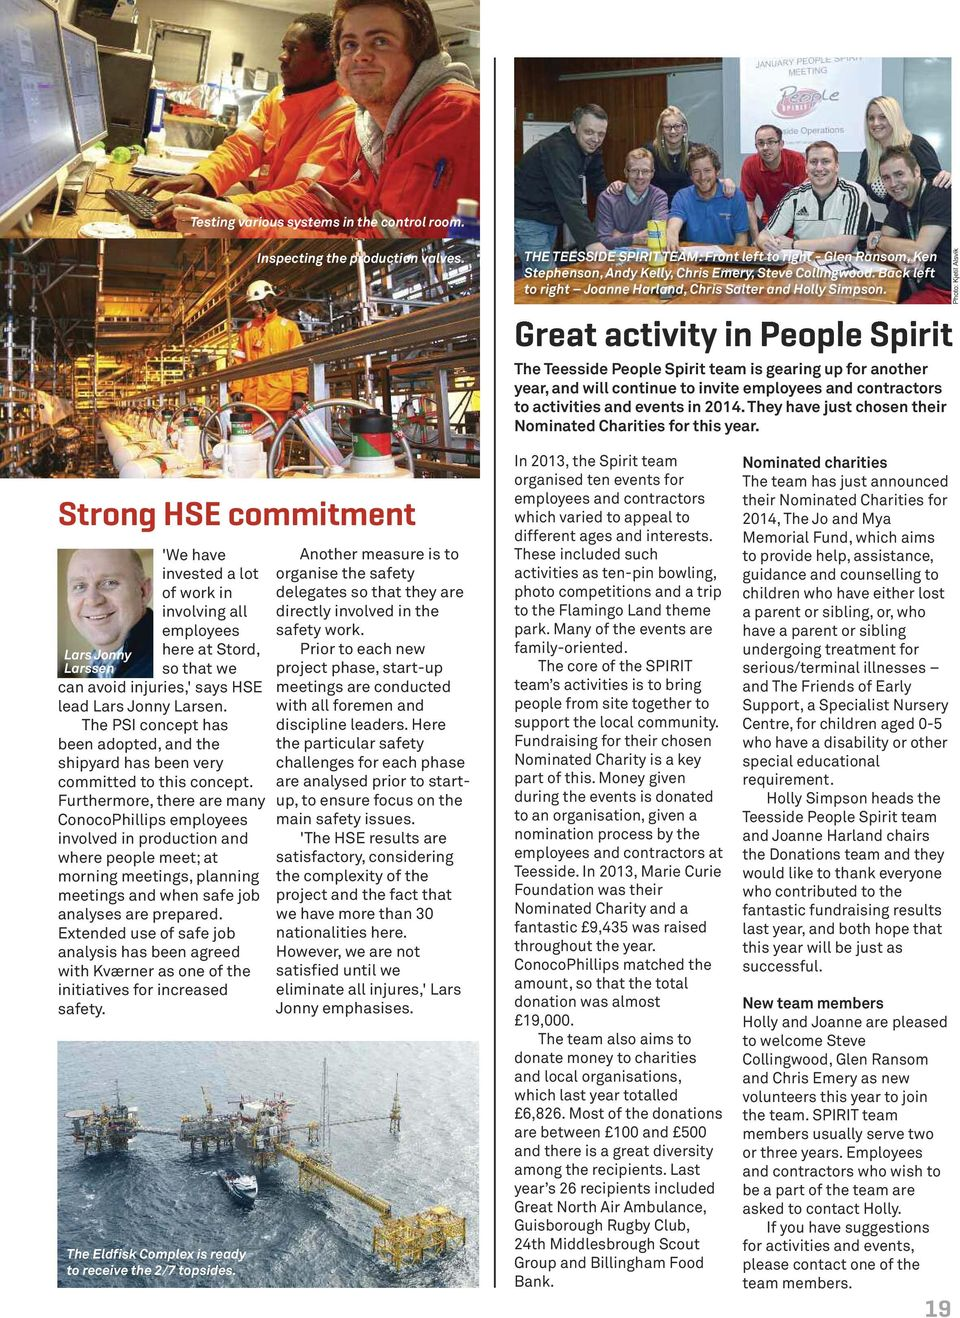 Great activity in People Spirit The Teesside People Spirit team is gearing up for another year, and will continue to invite employees and contractors to activities and events in 2014.